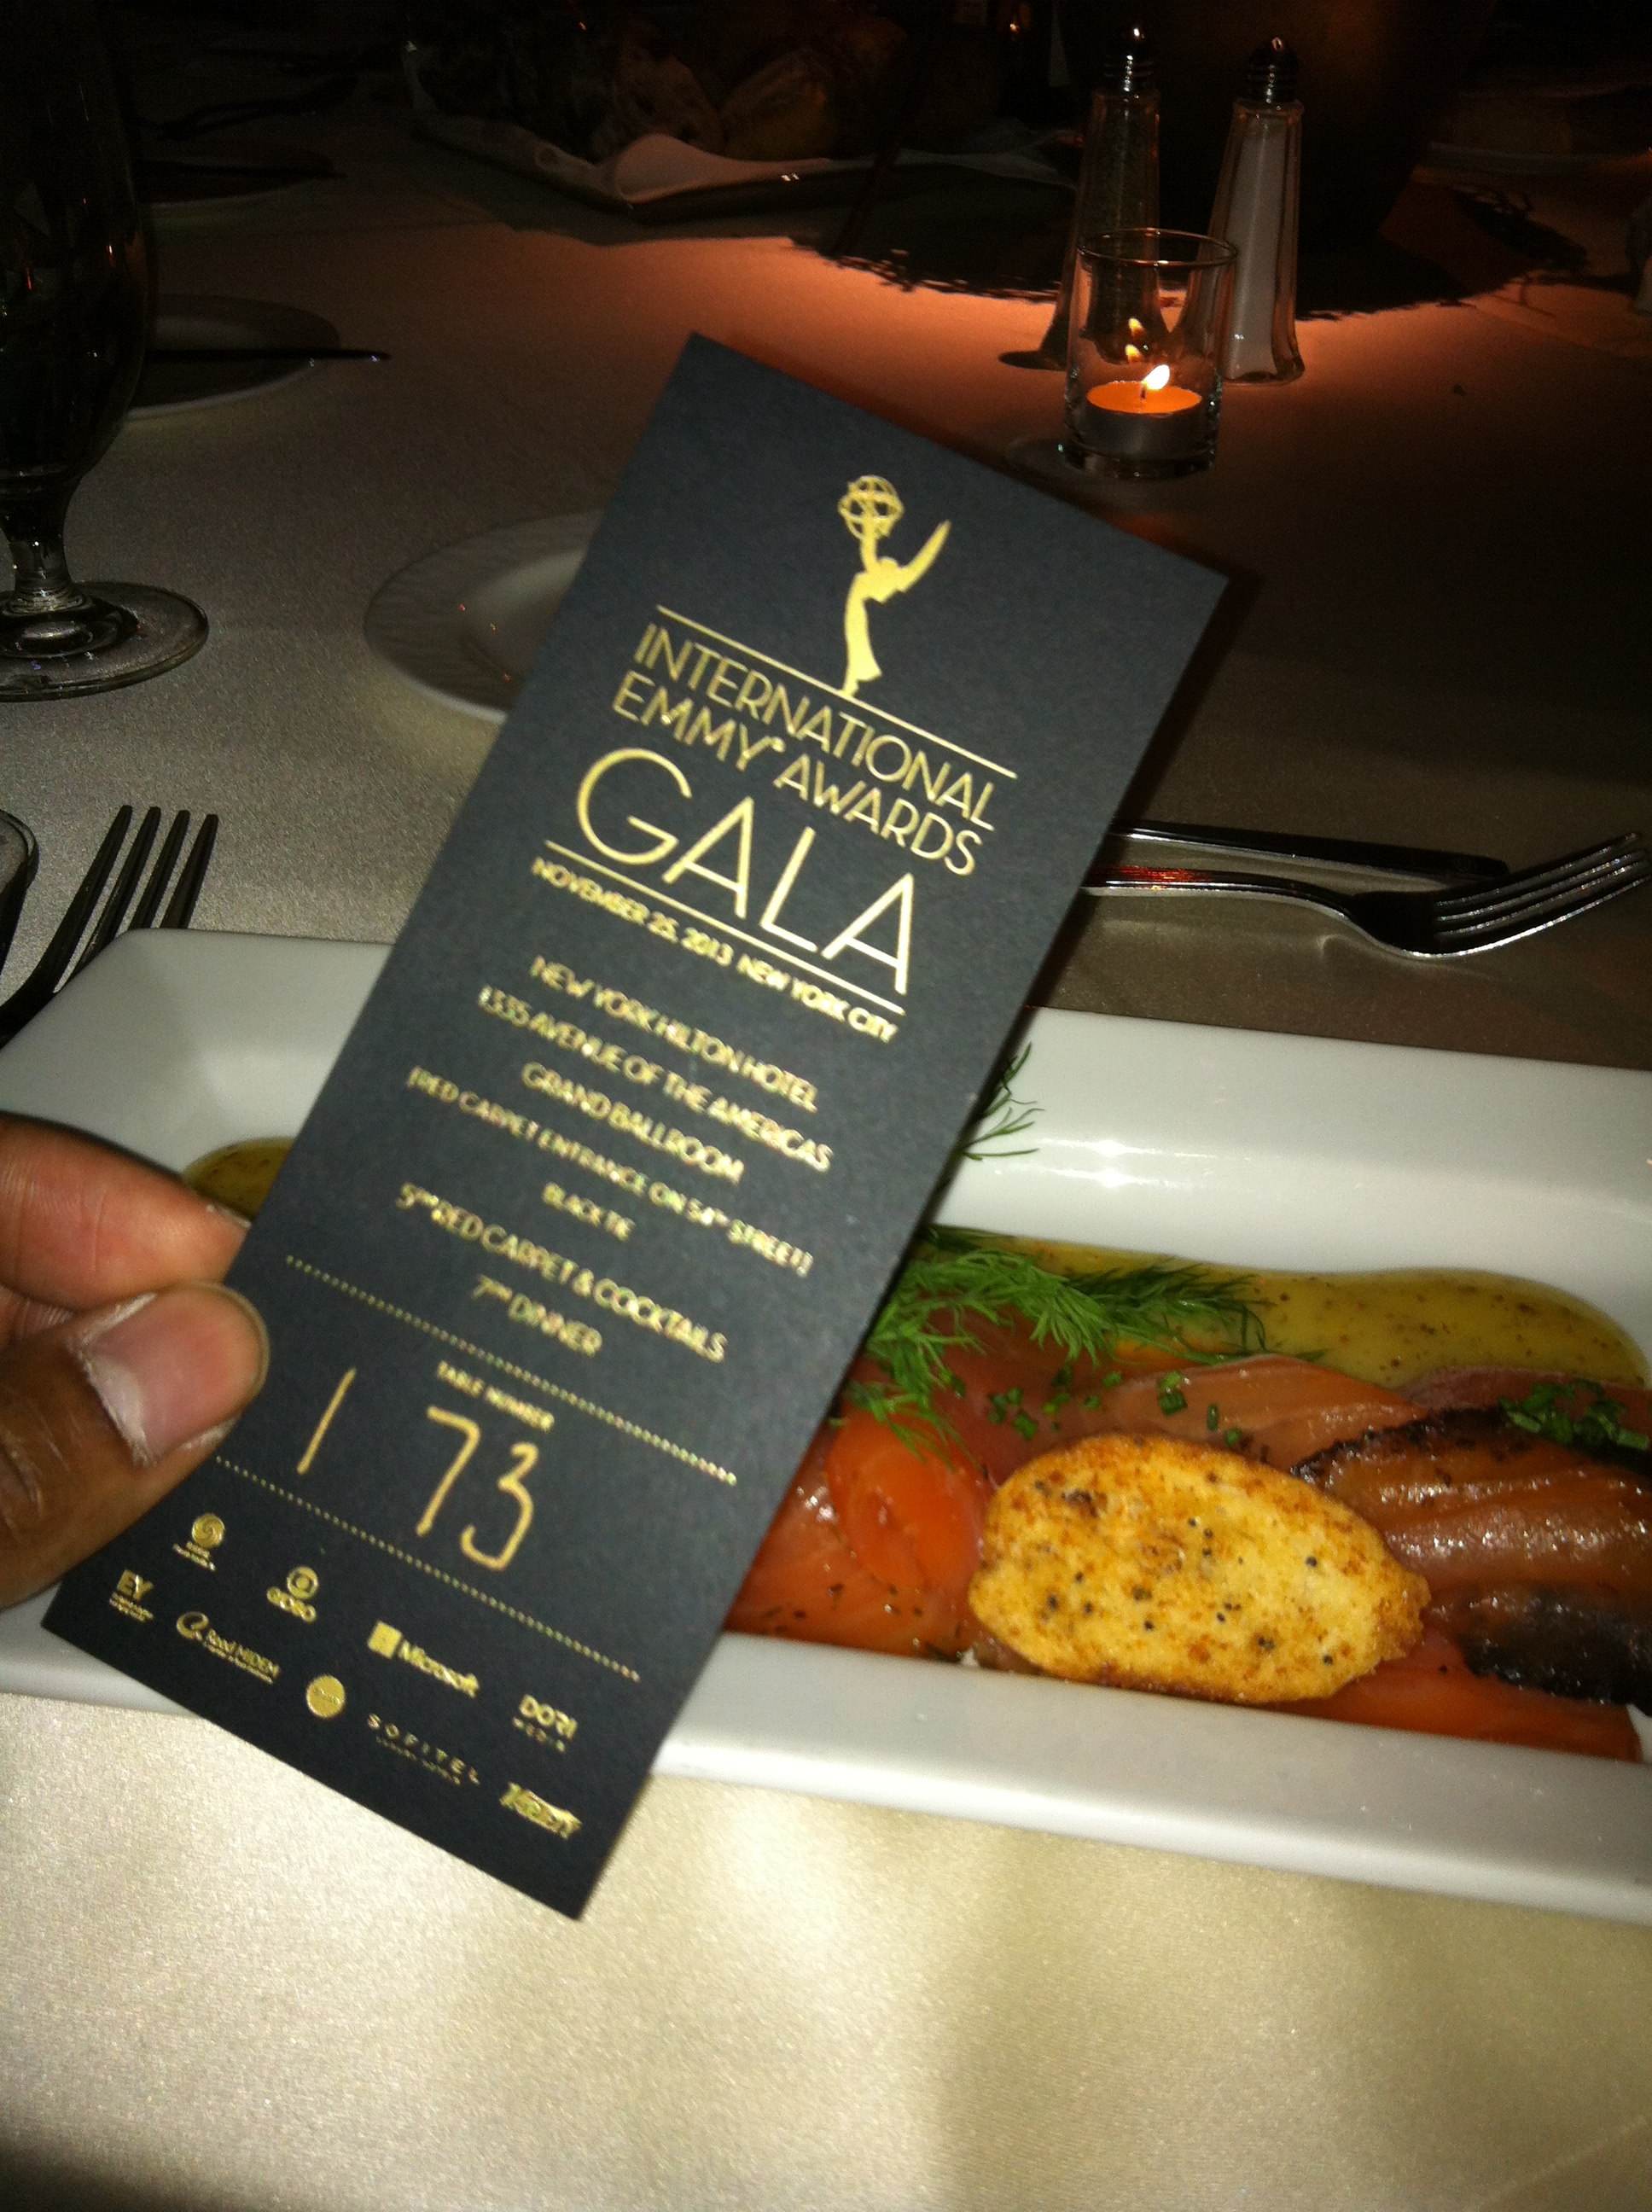 41st International Emmy Awards Menu